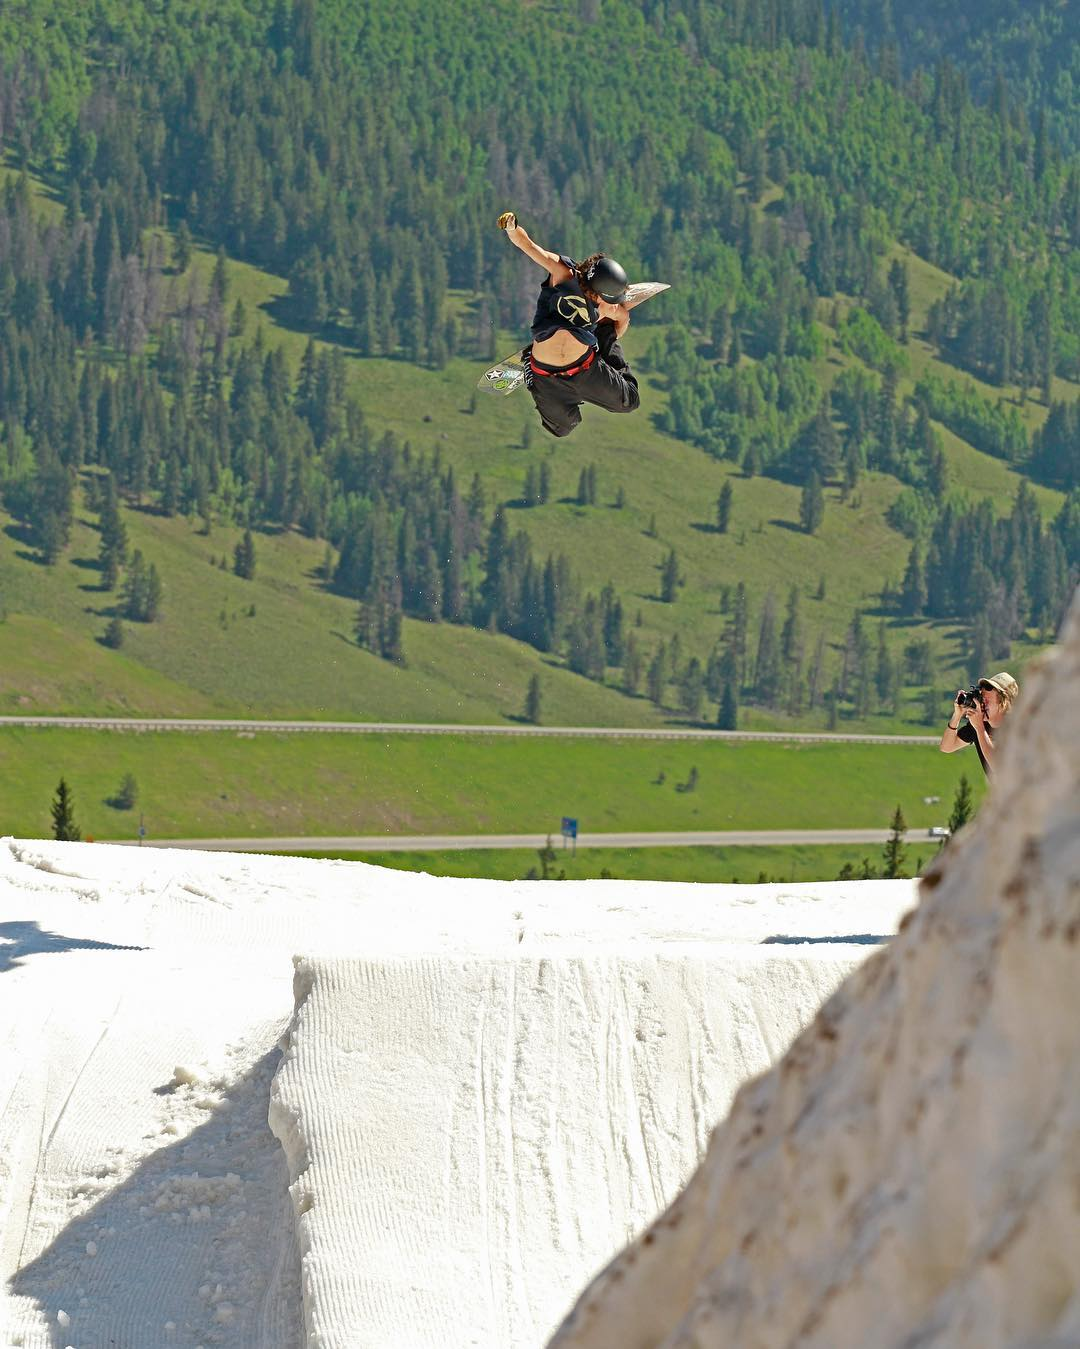 Summertime and the living is easy... Flux rider, @scottyvine at @woodwardcopper launching the white into the green. #snowboarding #fluxbindings #snowboard #summersnowboarding #fun ❄️